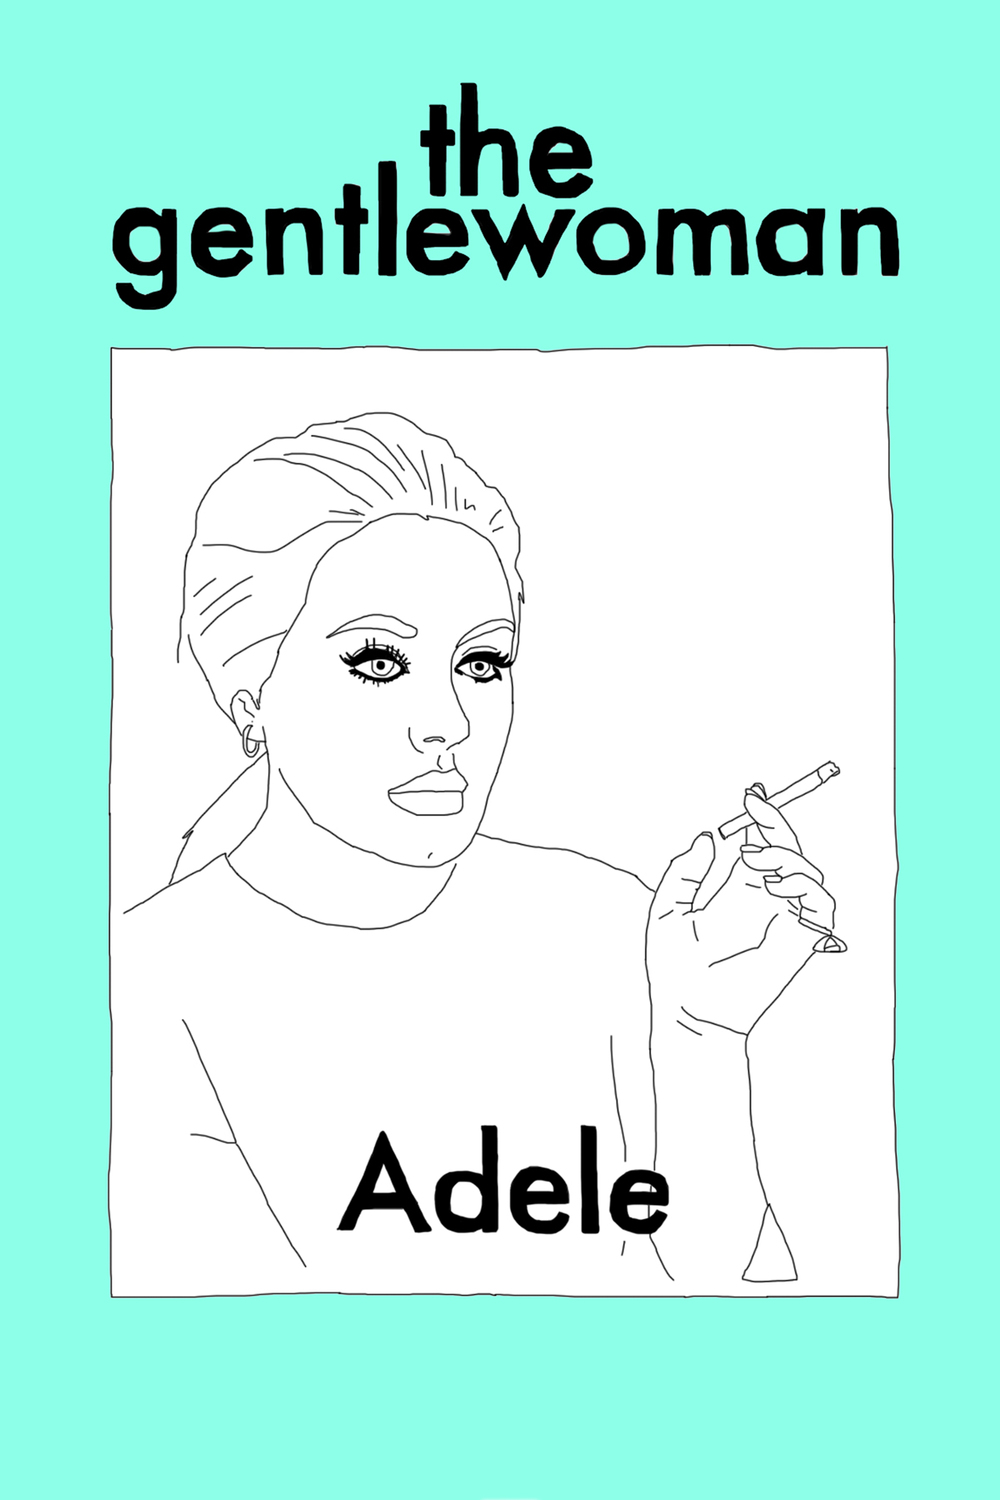 5gentlewoman colour better 6x4.jpg